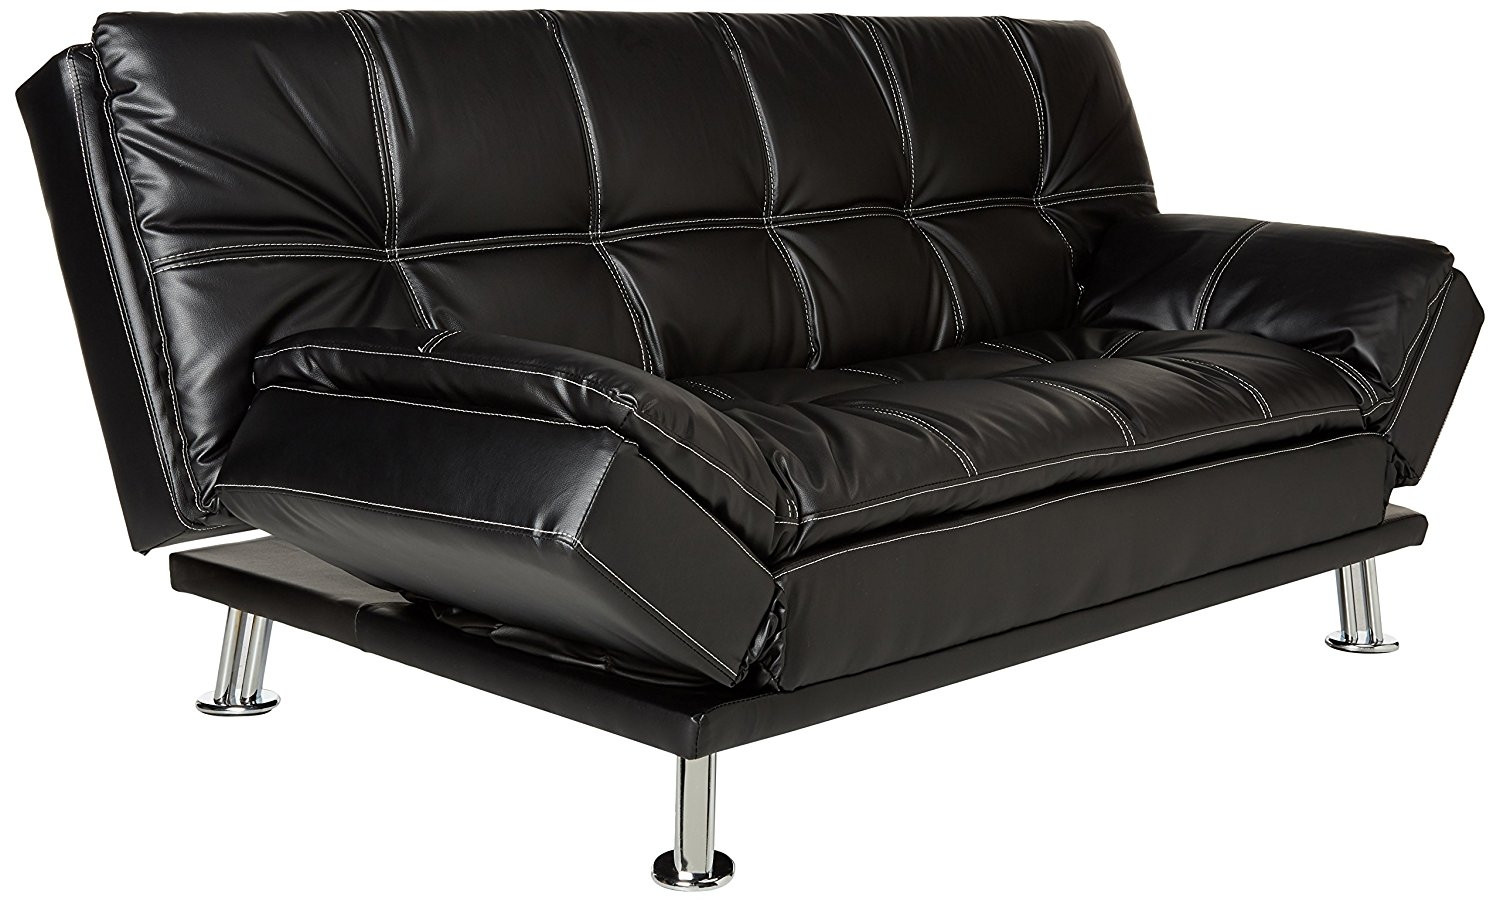 Coaster Contemporary Black Faux Leather Sofa Bed